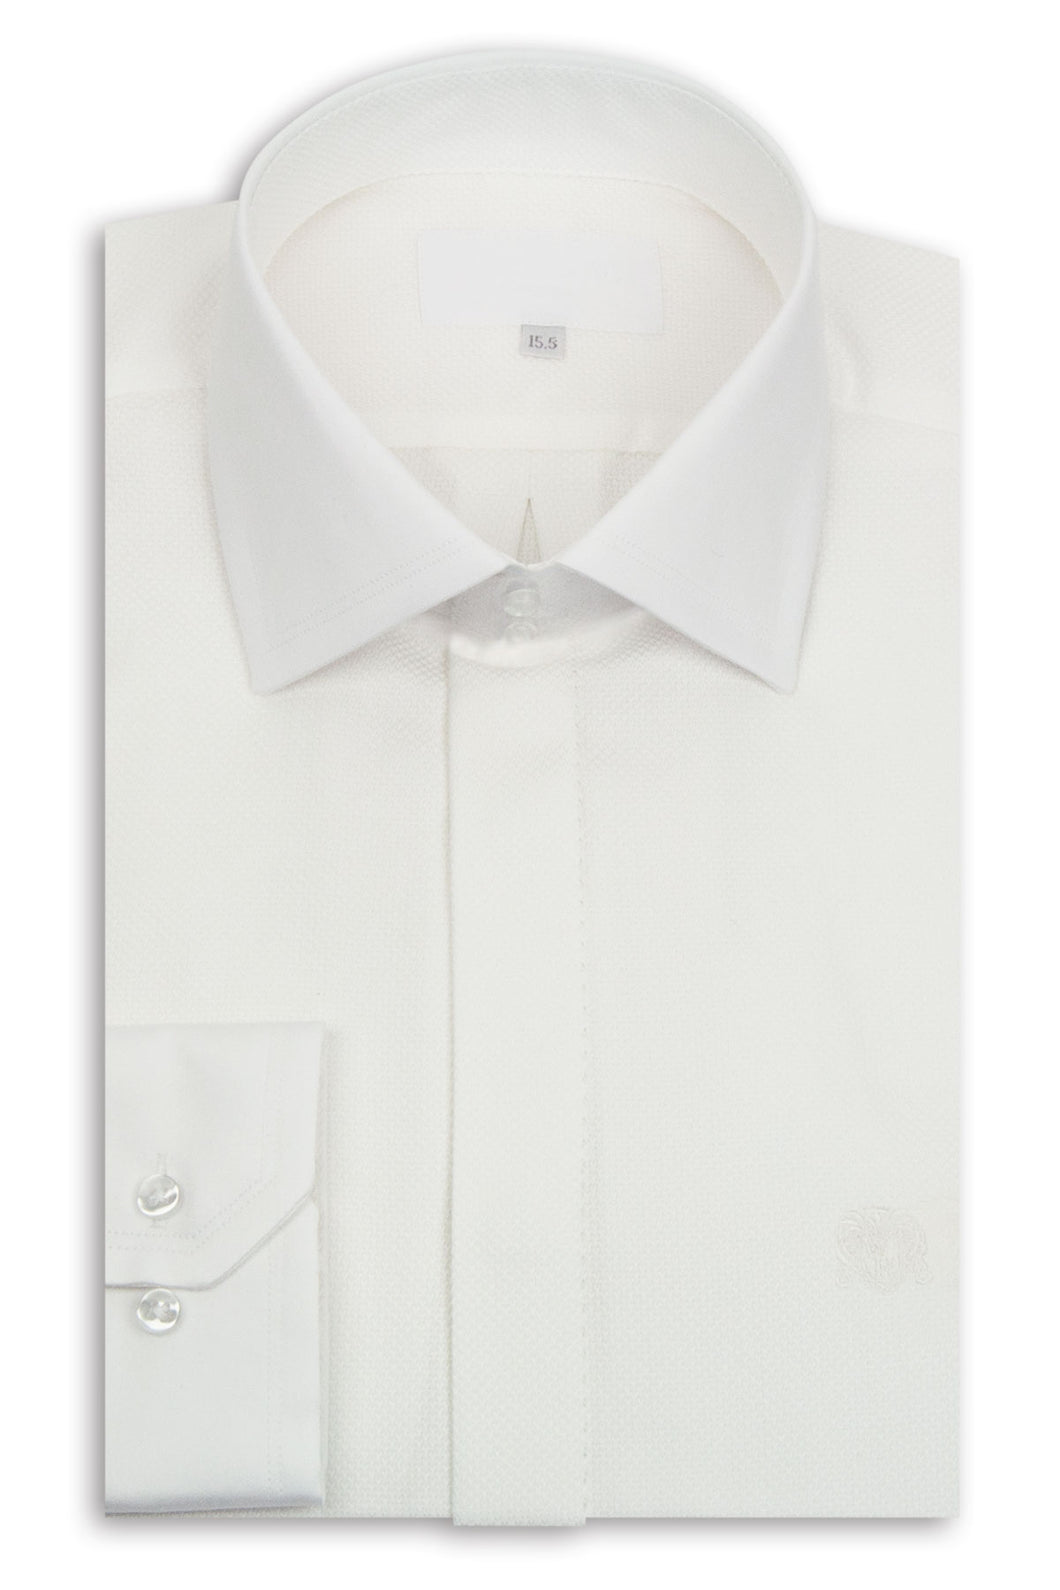 White Cutaway Collar Shirt with Textured Pattern